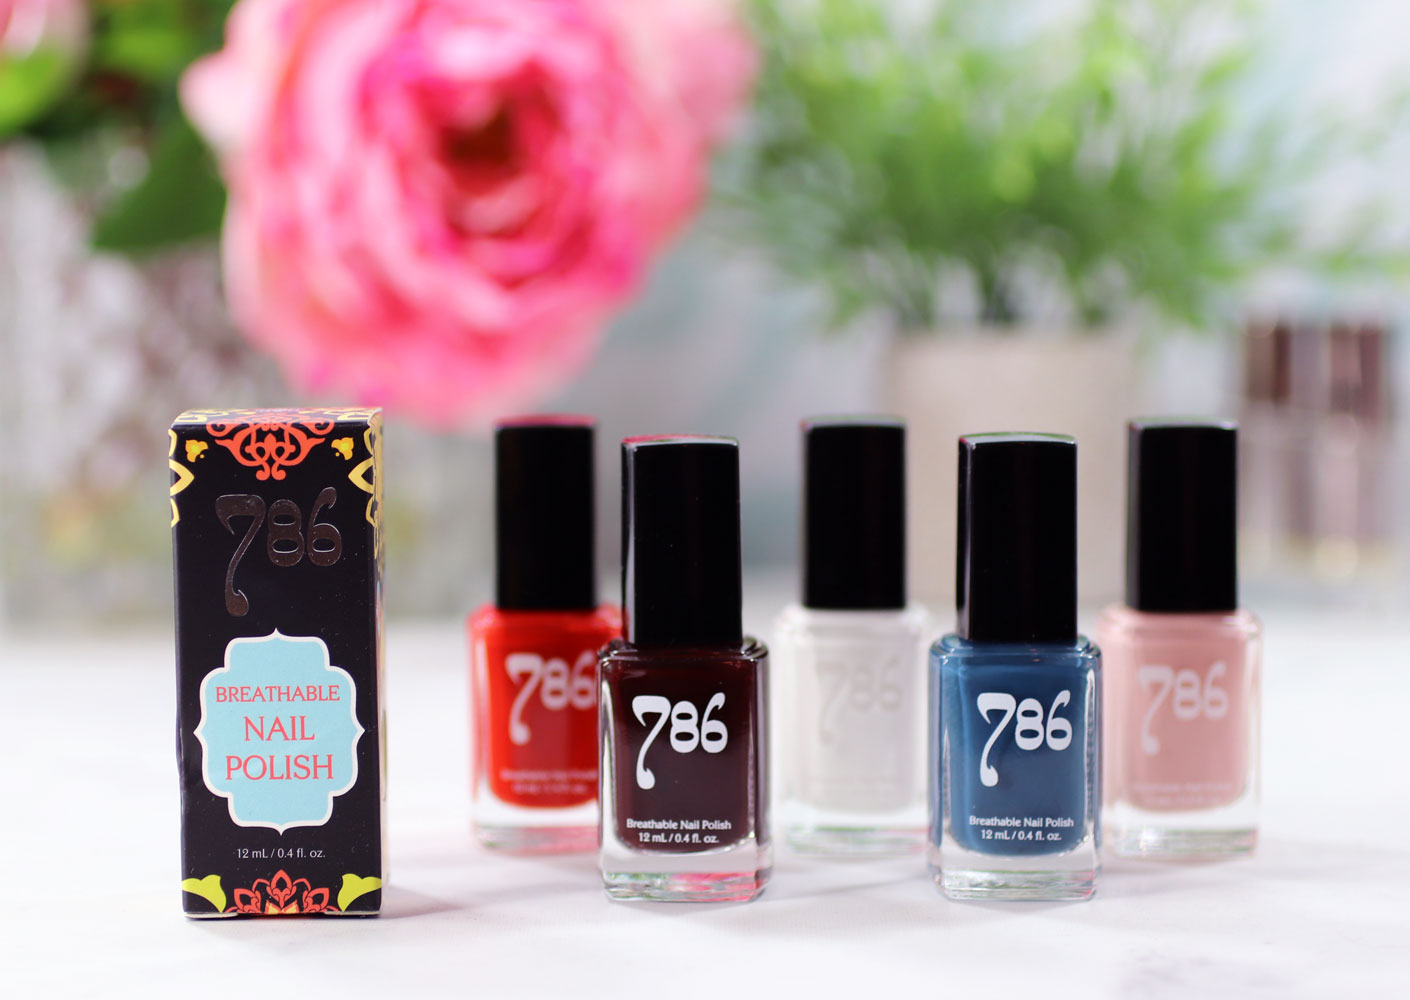 786 Cruelty Free and Breathable Nail Polish Review and Swatches